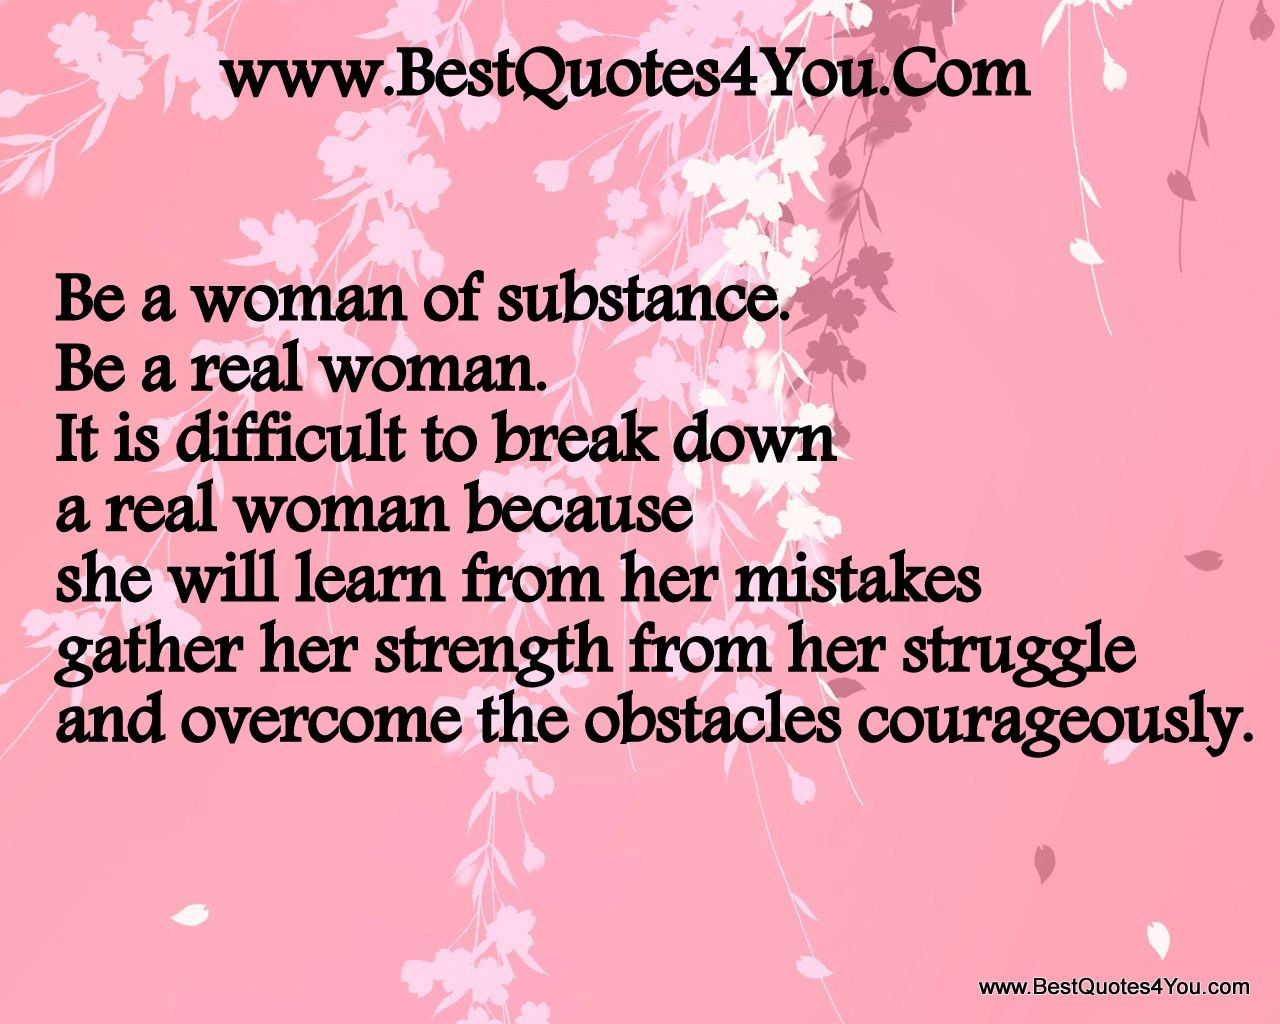 Google Image Result For Http Www Bestquotes4you Com Wp Content Uploads 2012 06 26 Pink Background Branches Real Women Quotes Strong Women Quotes Woman Quotes